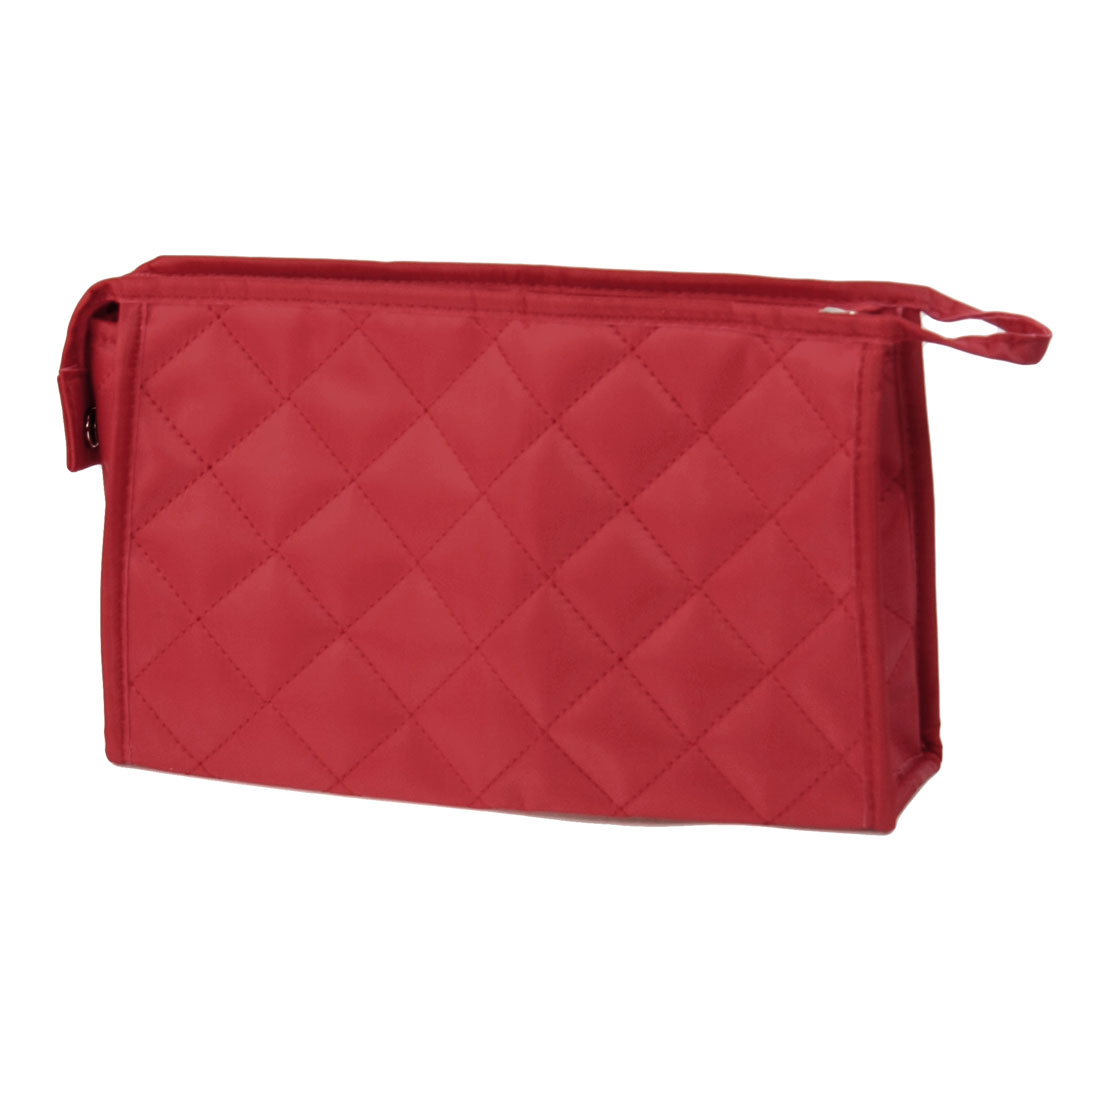 Lady Red Rhombus Pattern Zipper Cosmetic Lipstick Holder Pouch Bag w Mirror